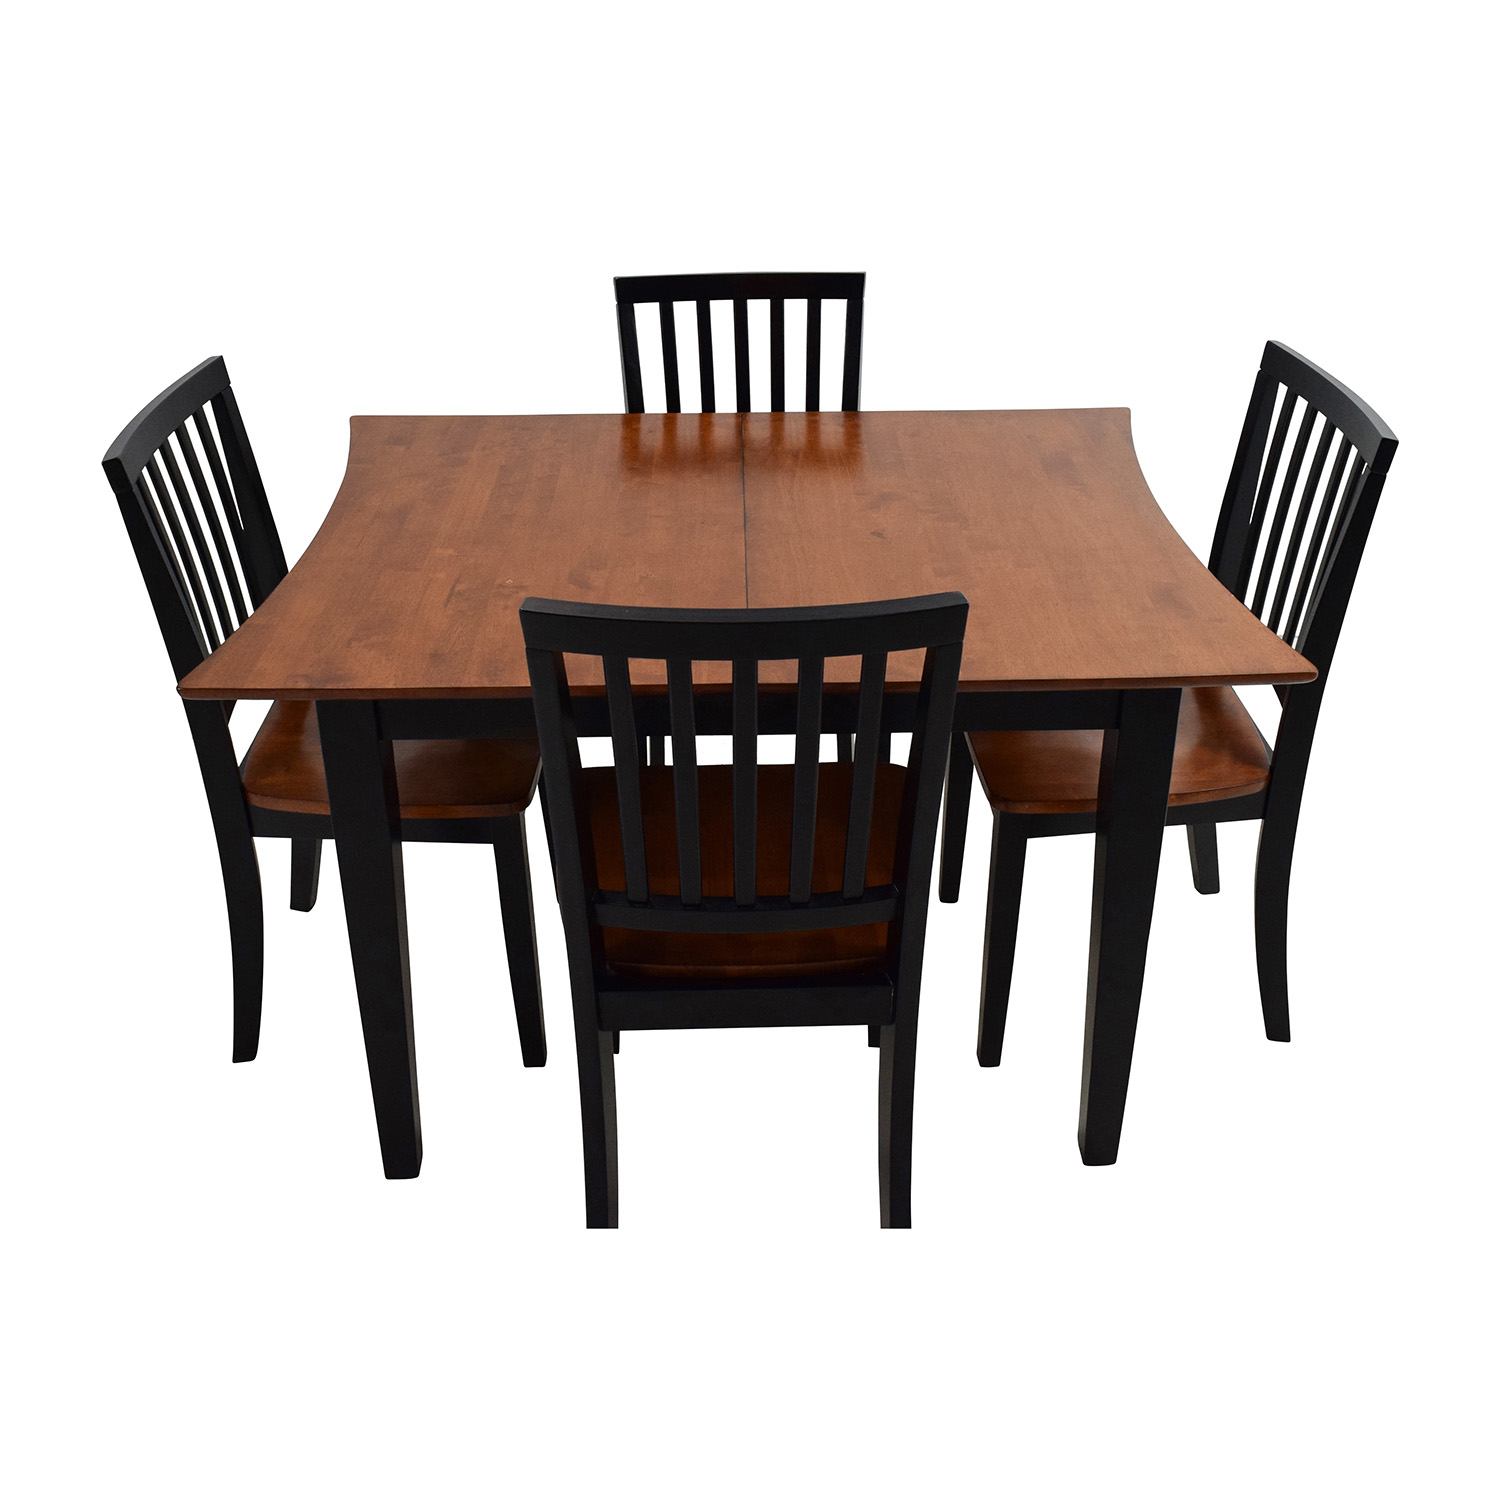 56 off bob 39 s discount furniture bob 39 s furniture for Cheap furniture sets